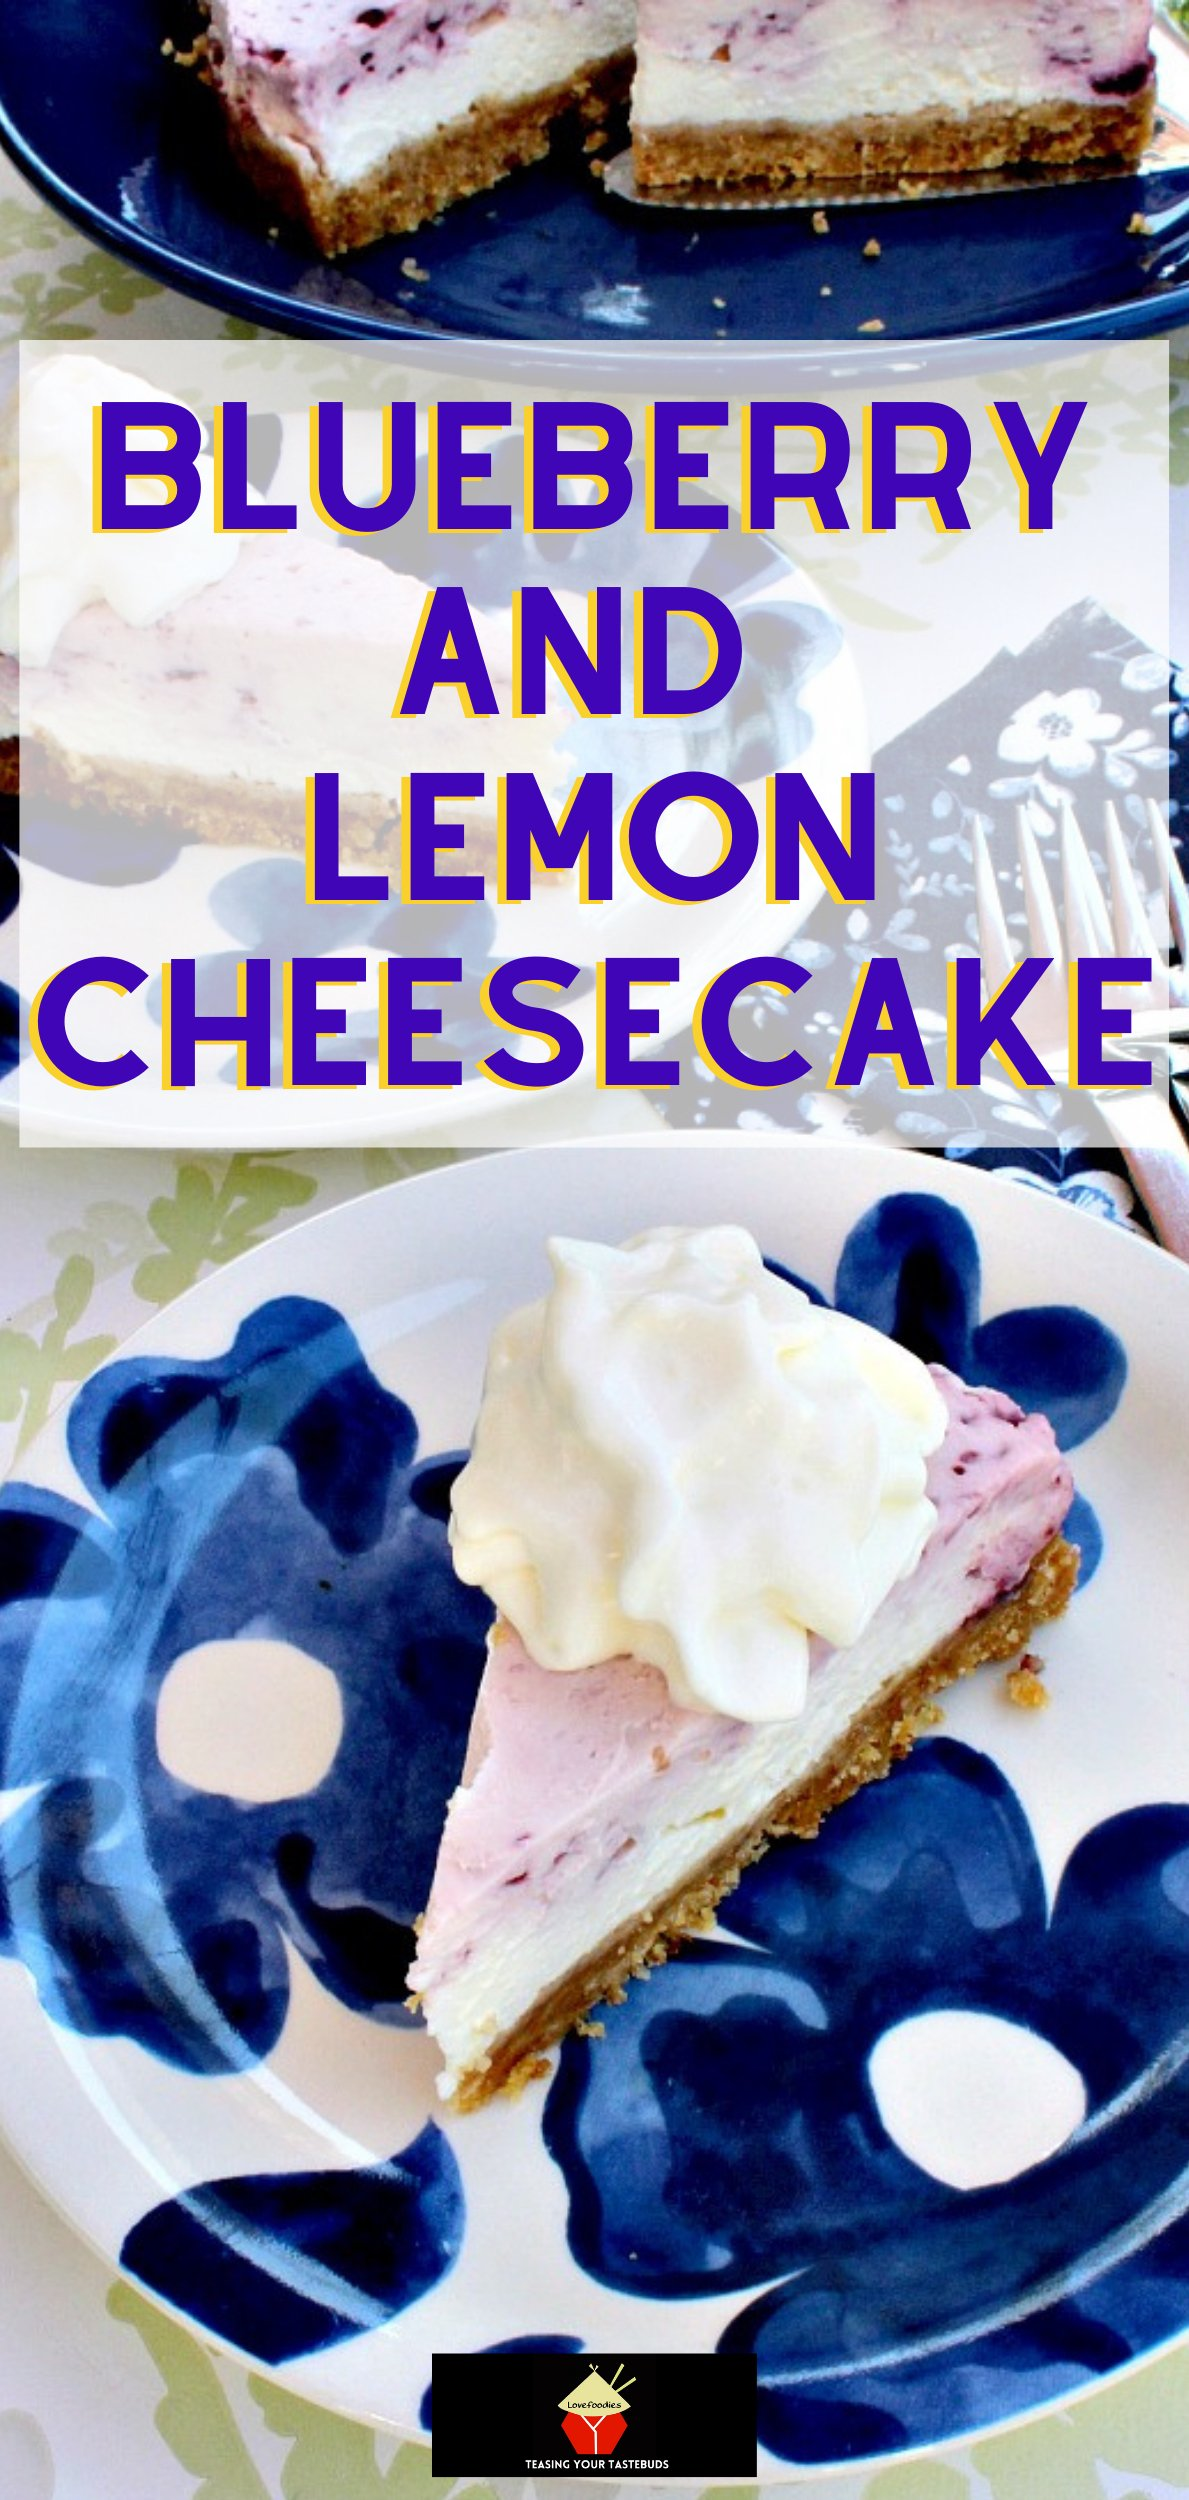 Blueberry and Lemon Cheesecake, a delicious VERY EASY No-Bake dessert, with a creamy filling of sweet blueberries and sharp lemon on a crunchy cookie base.